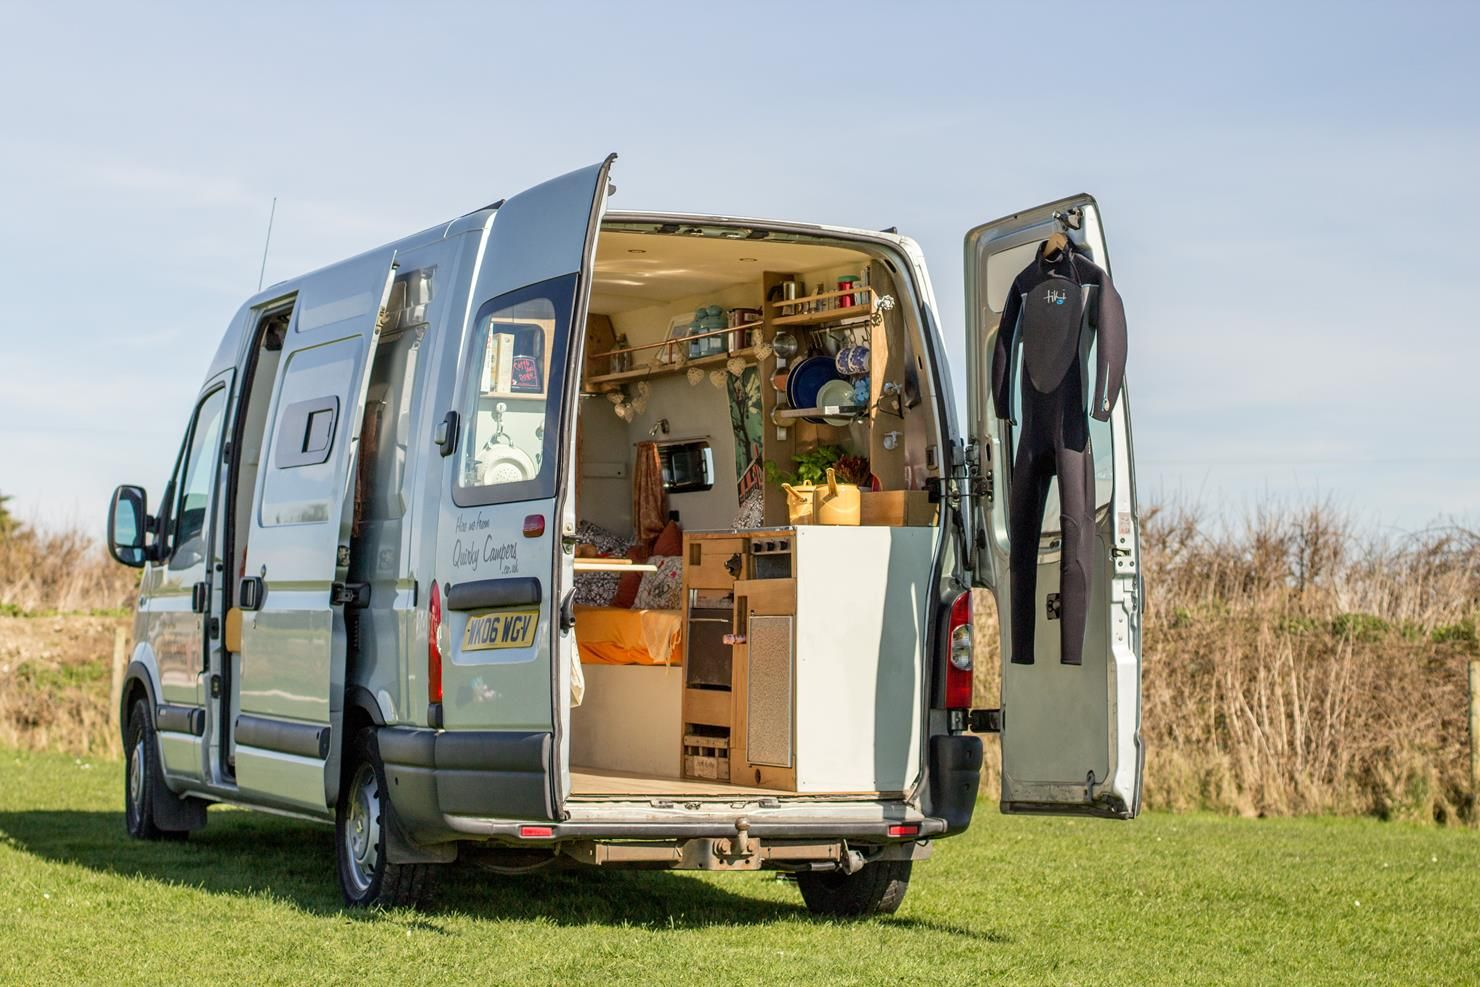 Campervan Hire Quirky Campers Home Of Handmade Campers Campervan Hire Rv Camper